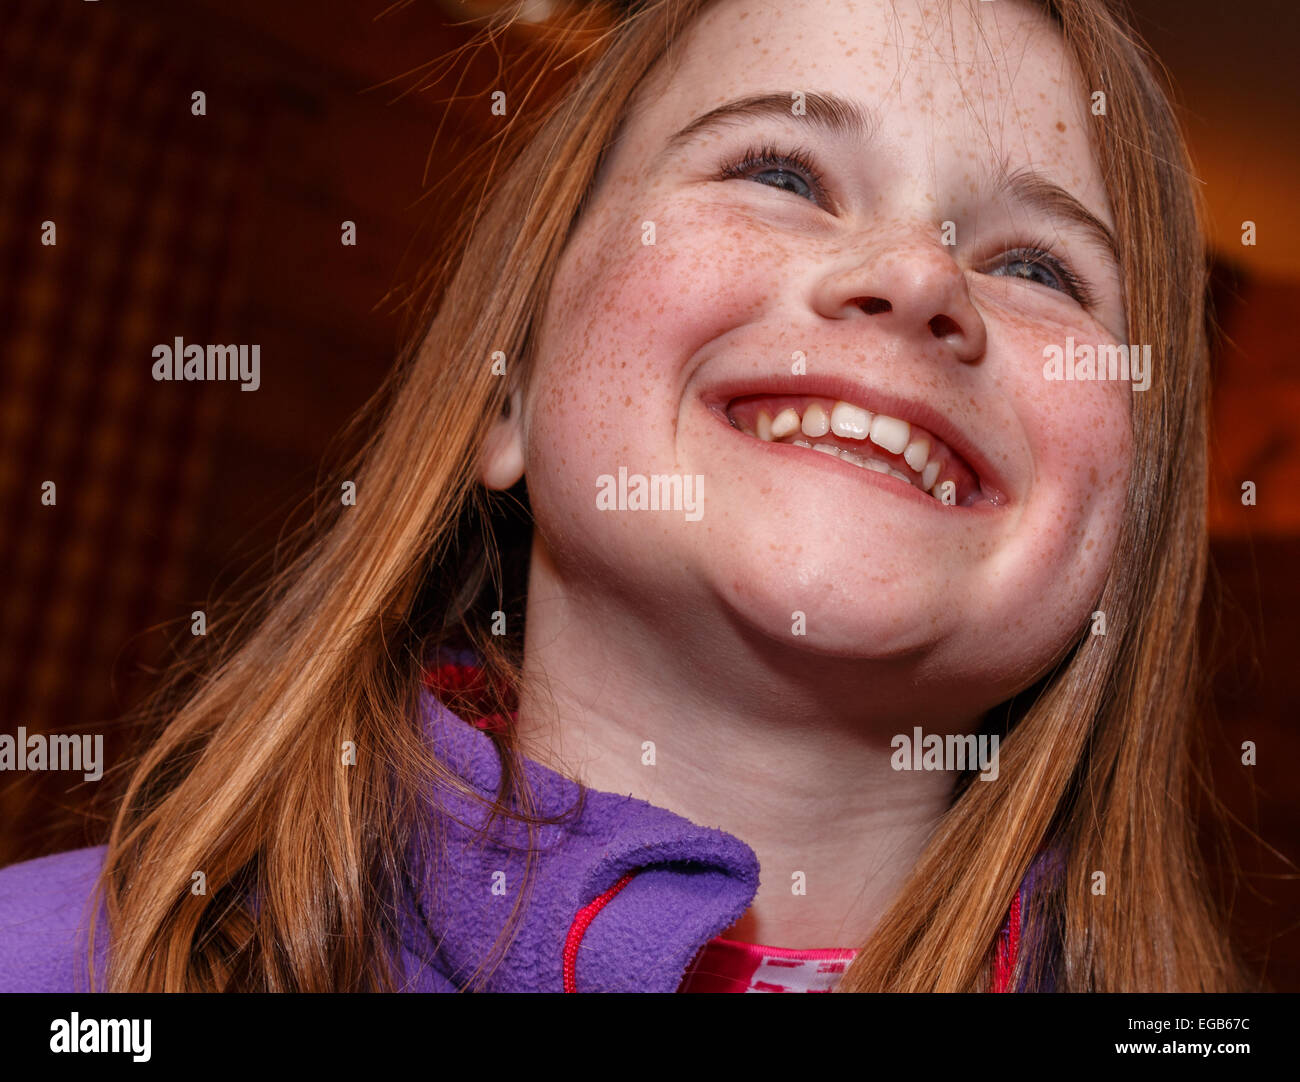 Smiling girl with red hair and freckles.  Big grin. Shot from below underneath. - Stock Image